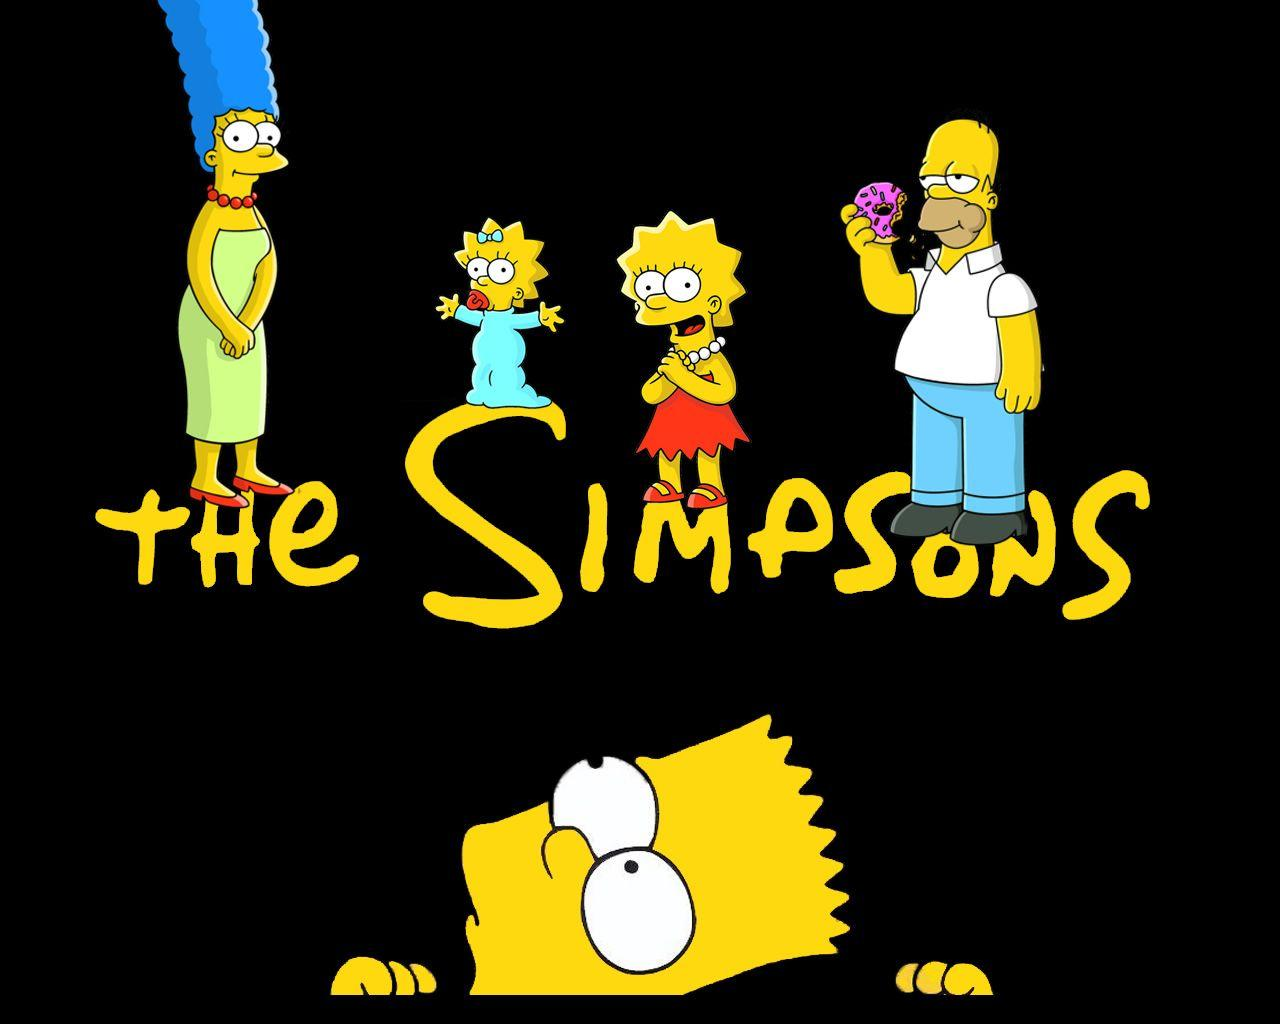 The simpsons movie wallpapers wallpaper cave for Simpsons wallpaper for bedroom